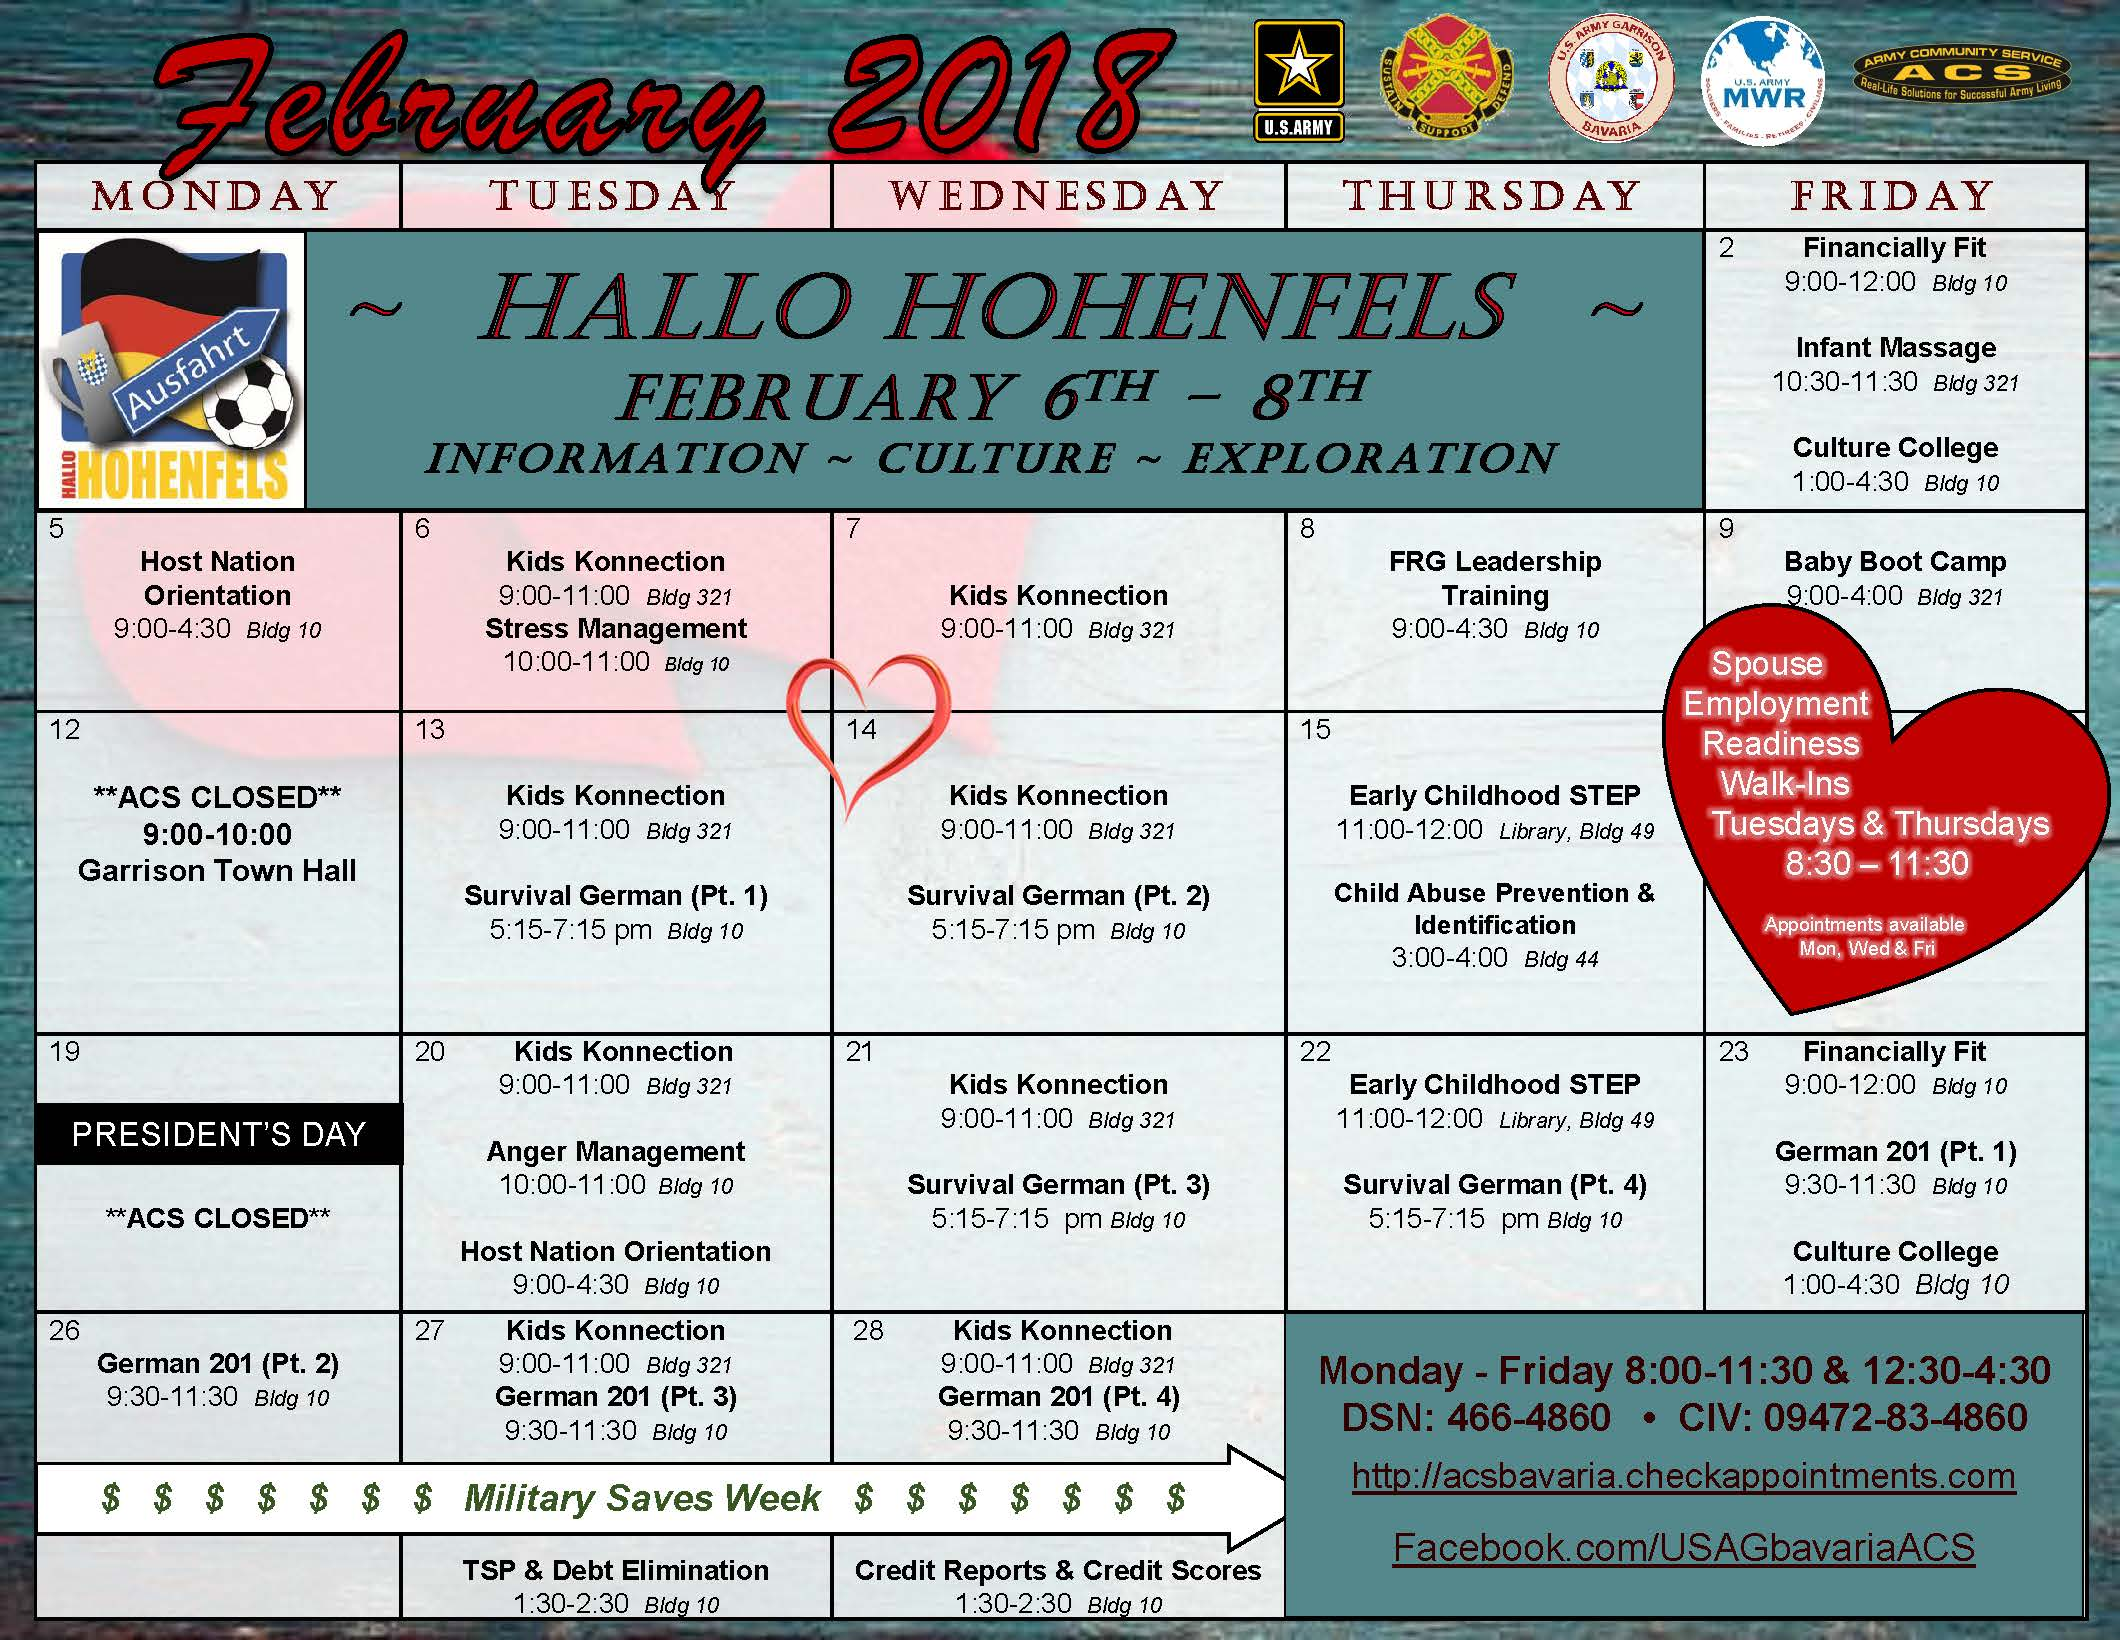 HOH February 2018 Hohenfels ACS Calendar of Events_Page_1.jpg